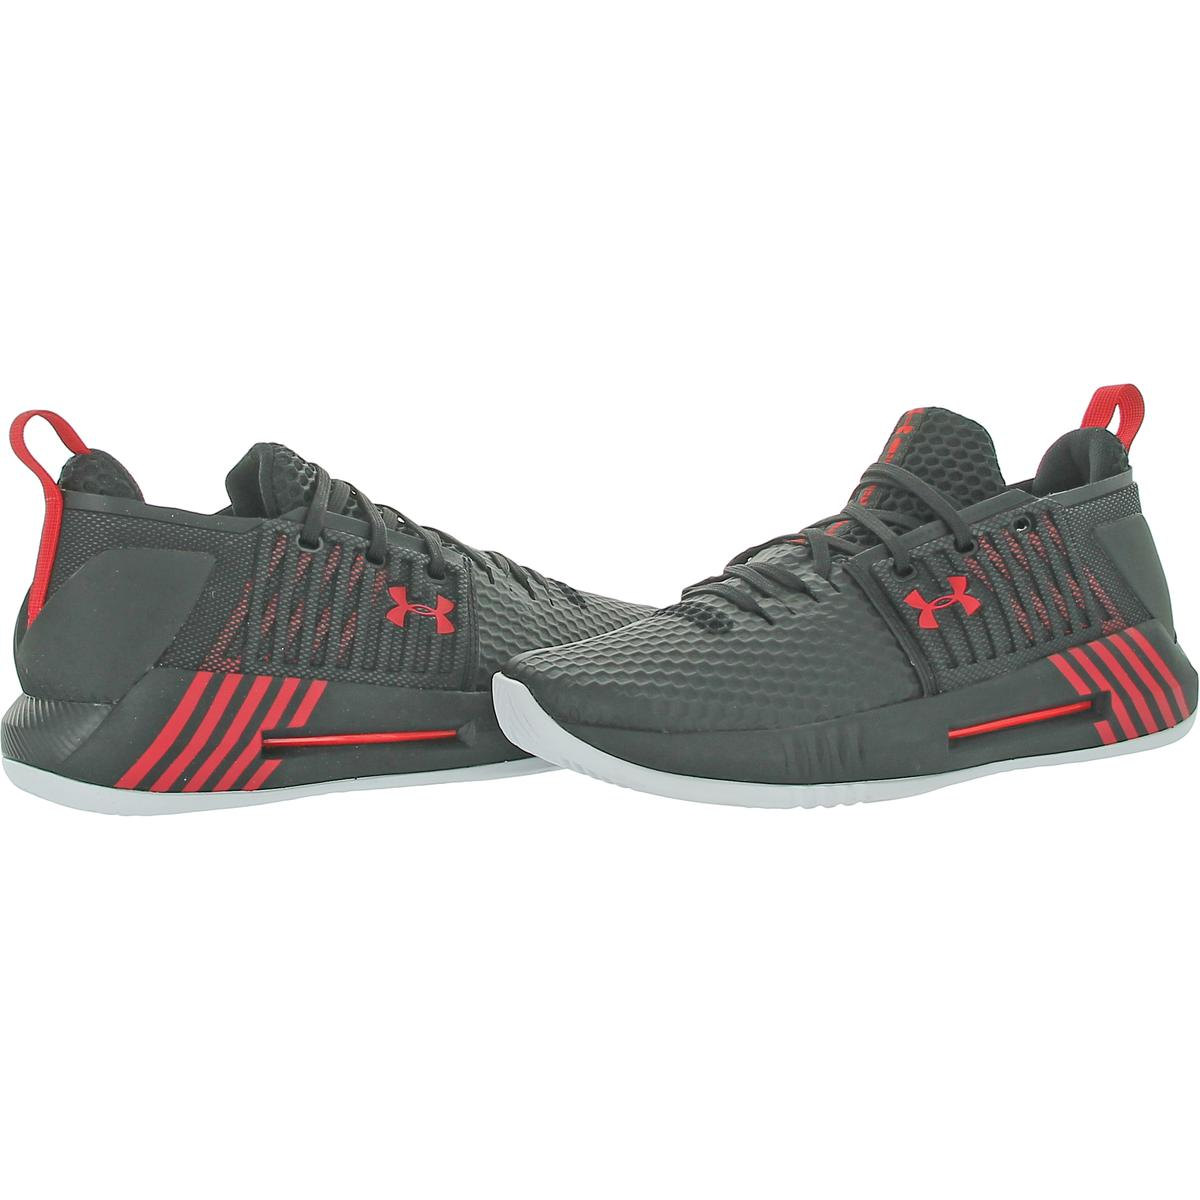 miniatuur 11 - Under Armour Mens Drive 4 Low Fitness Workout Trainers Sneakers Shoes BHFO 8843